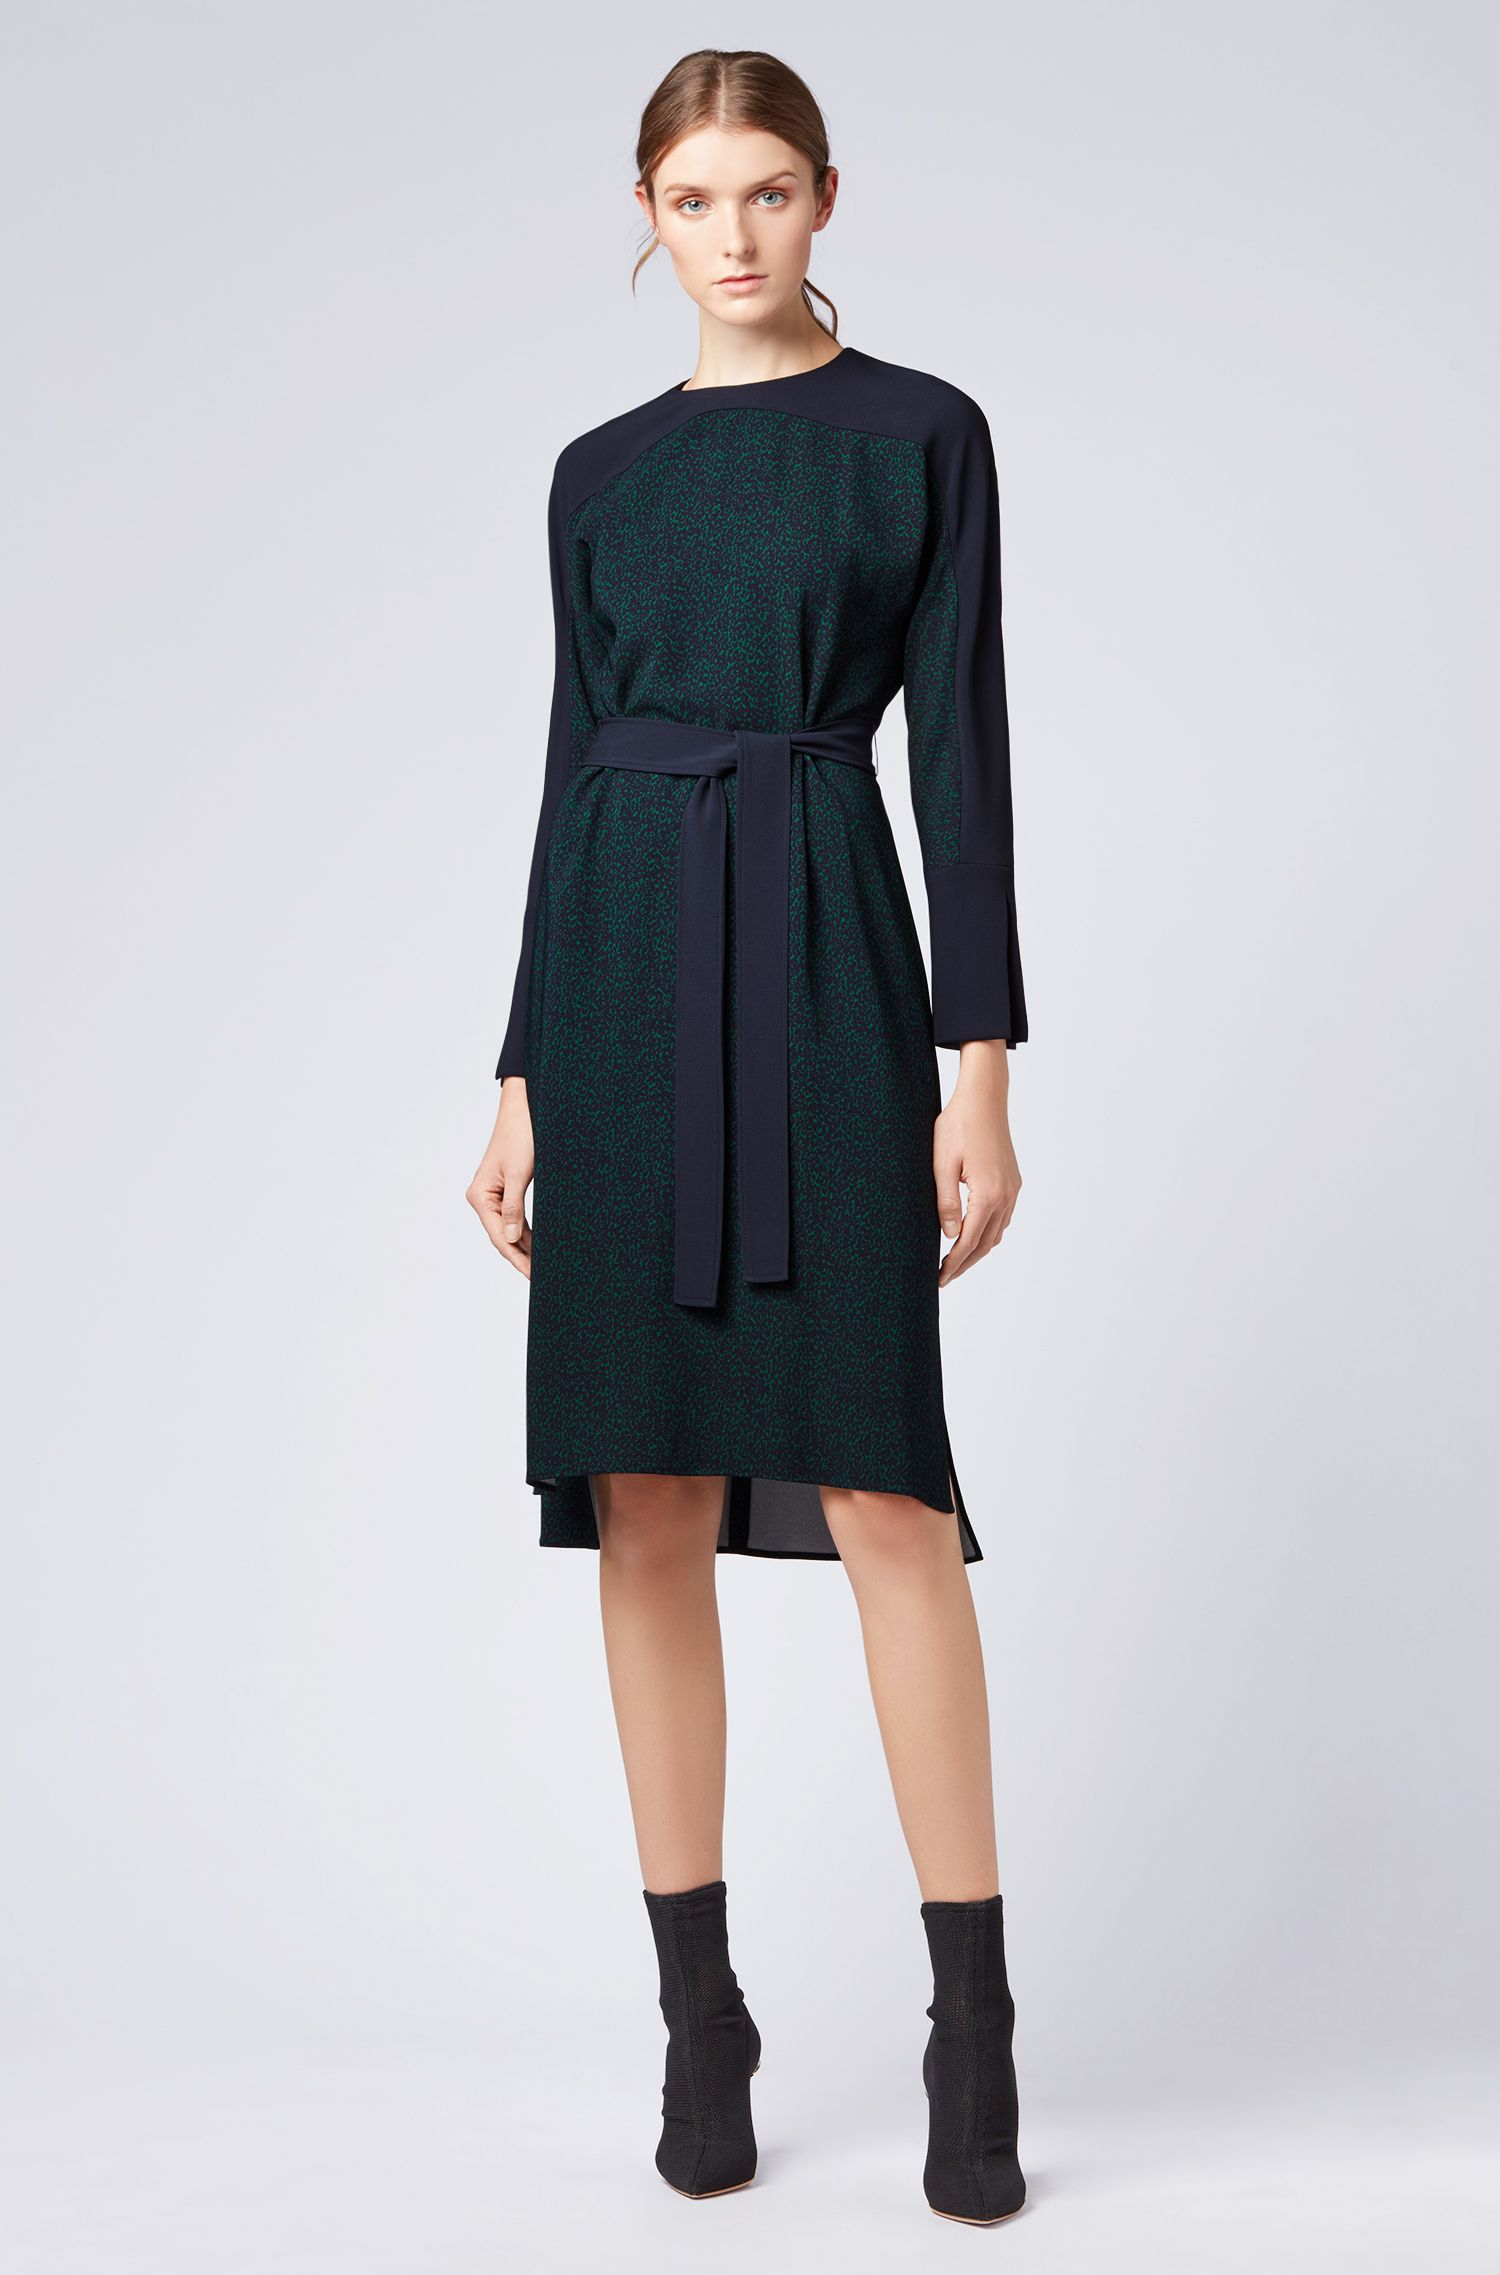 Belted dress in stretch fabric with all-over pattern, Patterned